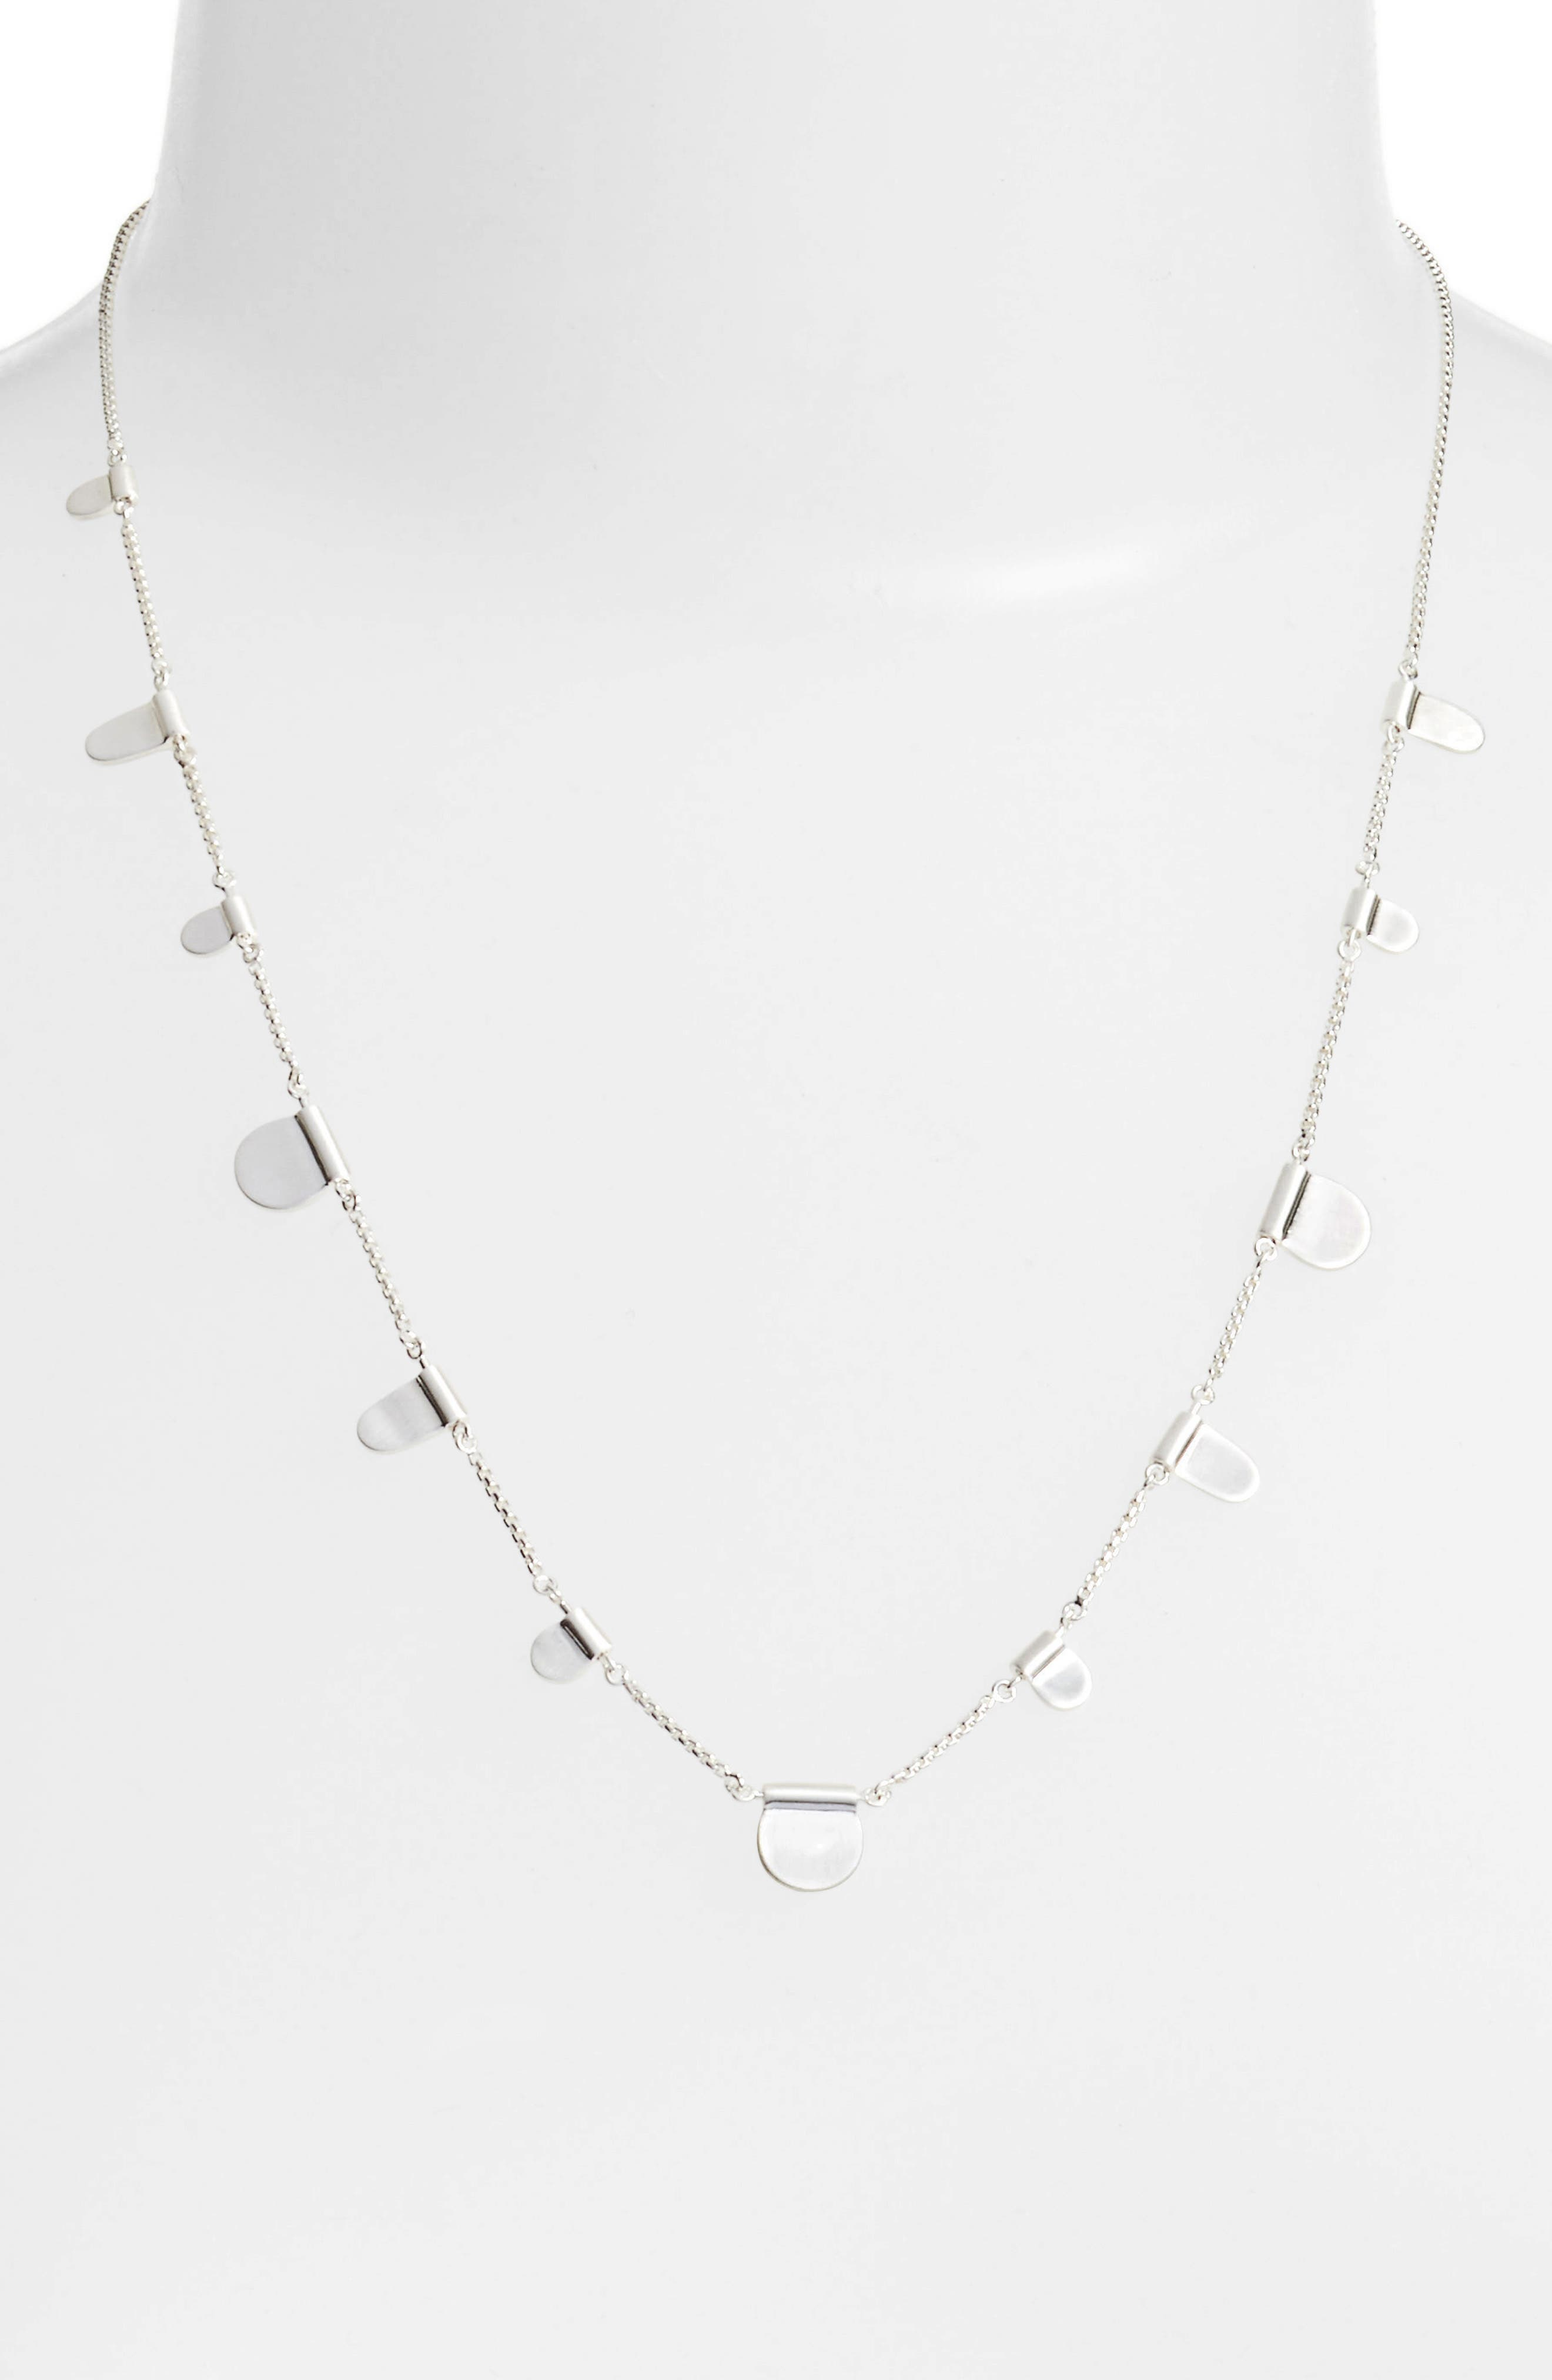 Olive Necklace,                             Alternate thumbnail 2, color,                             BRIGHT SILVER